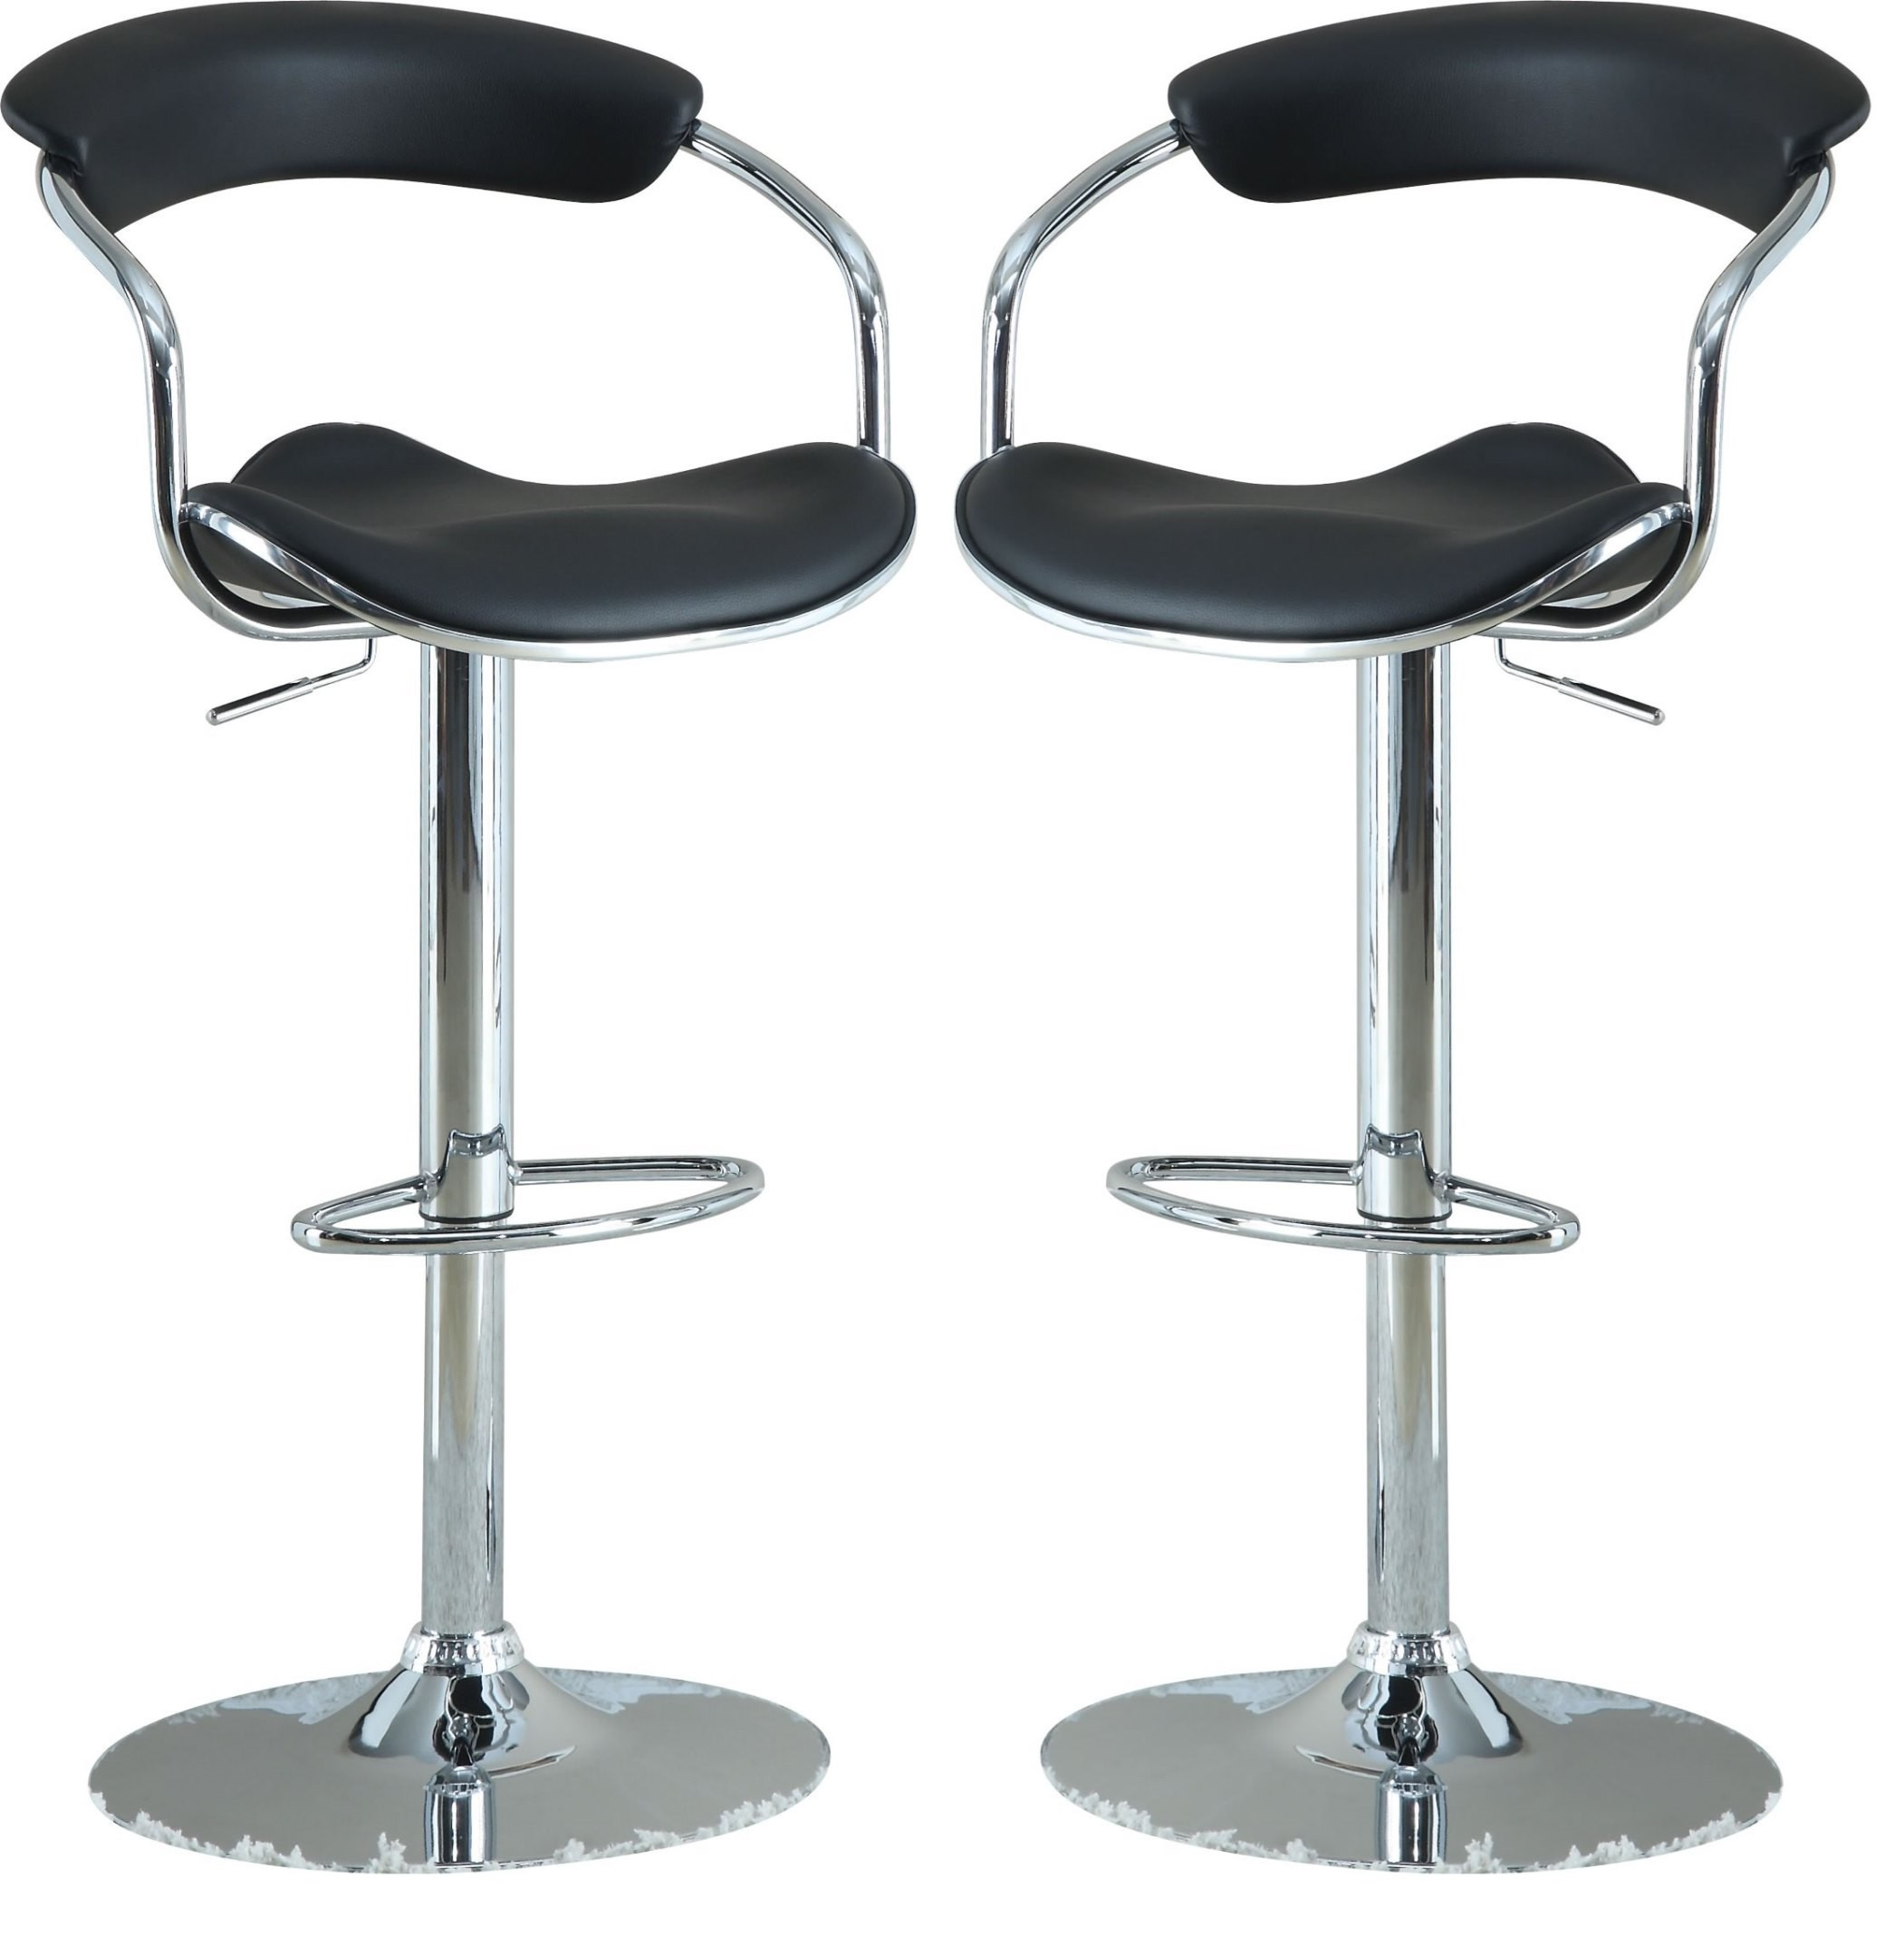 modern black adjustable bar stool set of 2 from coaster